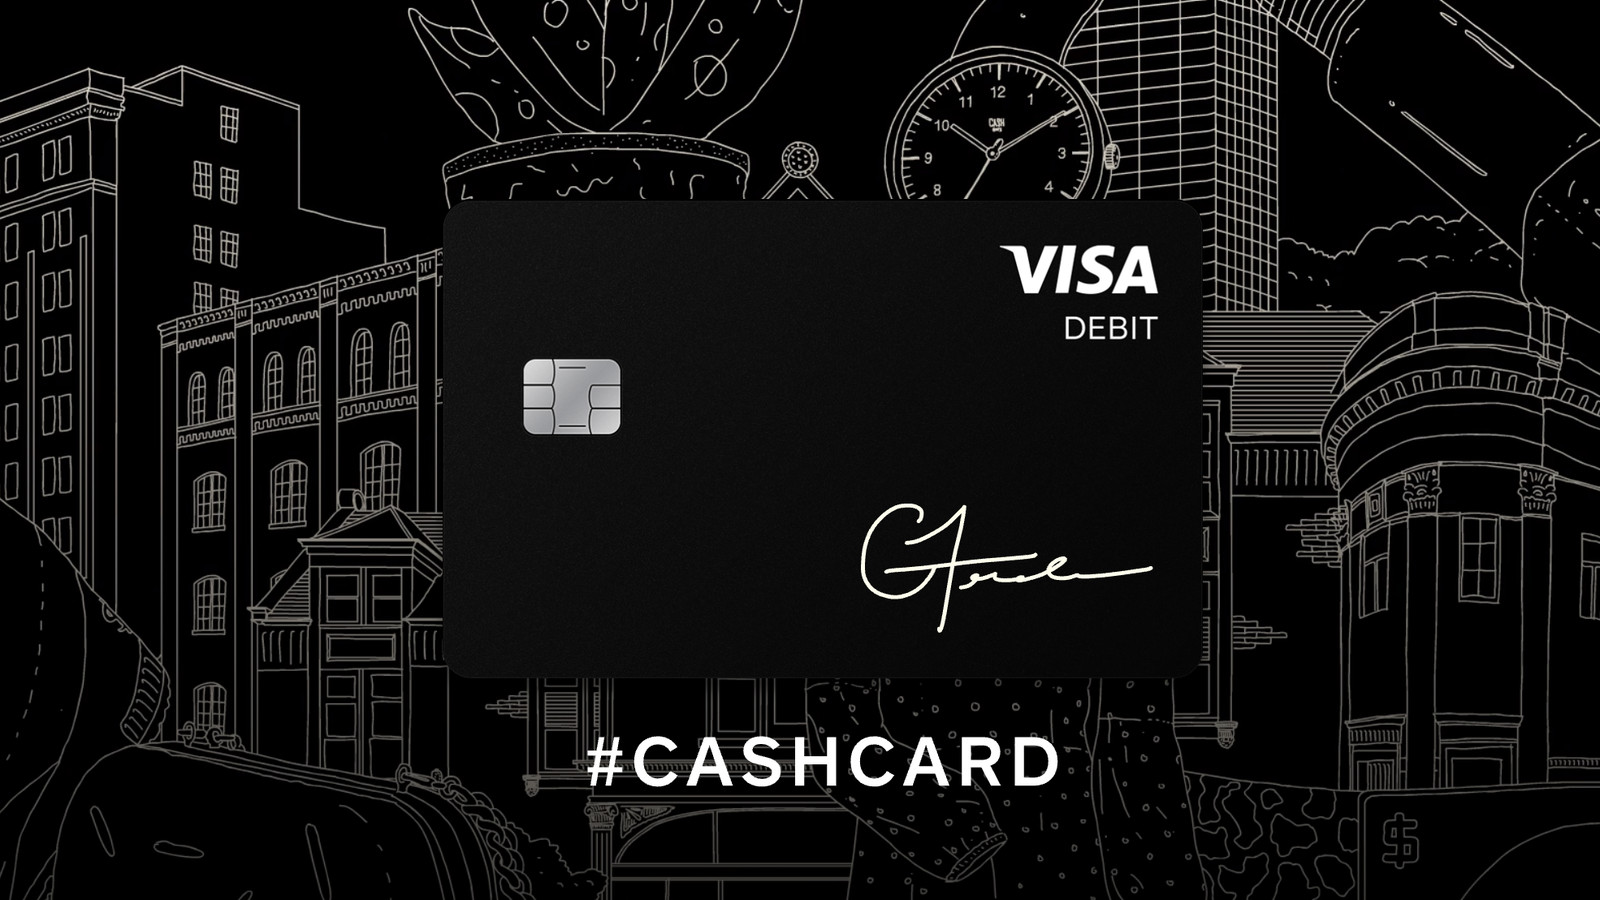 Square opens customized prepaid debit cards program to everyone square opens customized prepaid debit cards program to everyone the verge magicingreecefo Choice Image